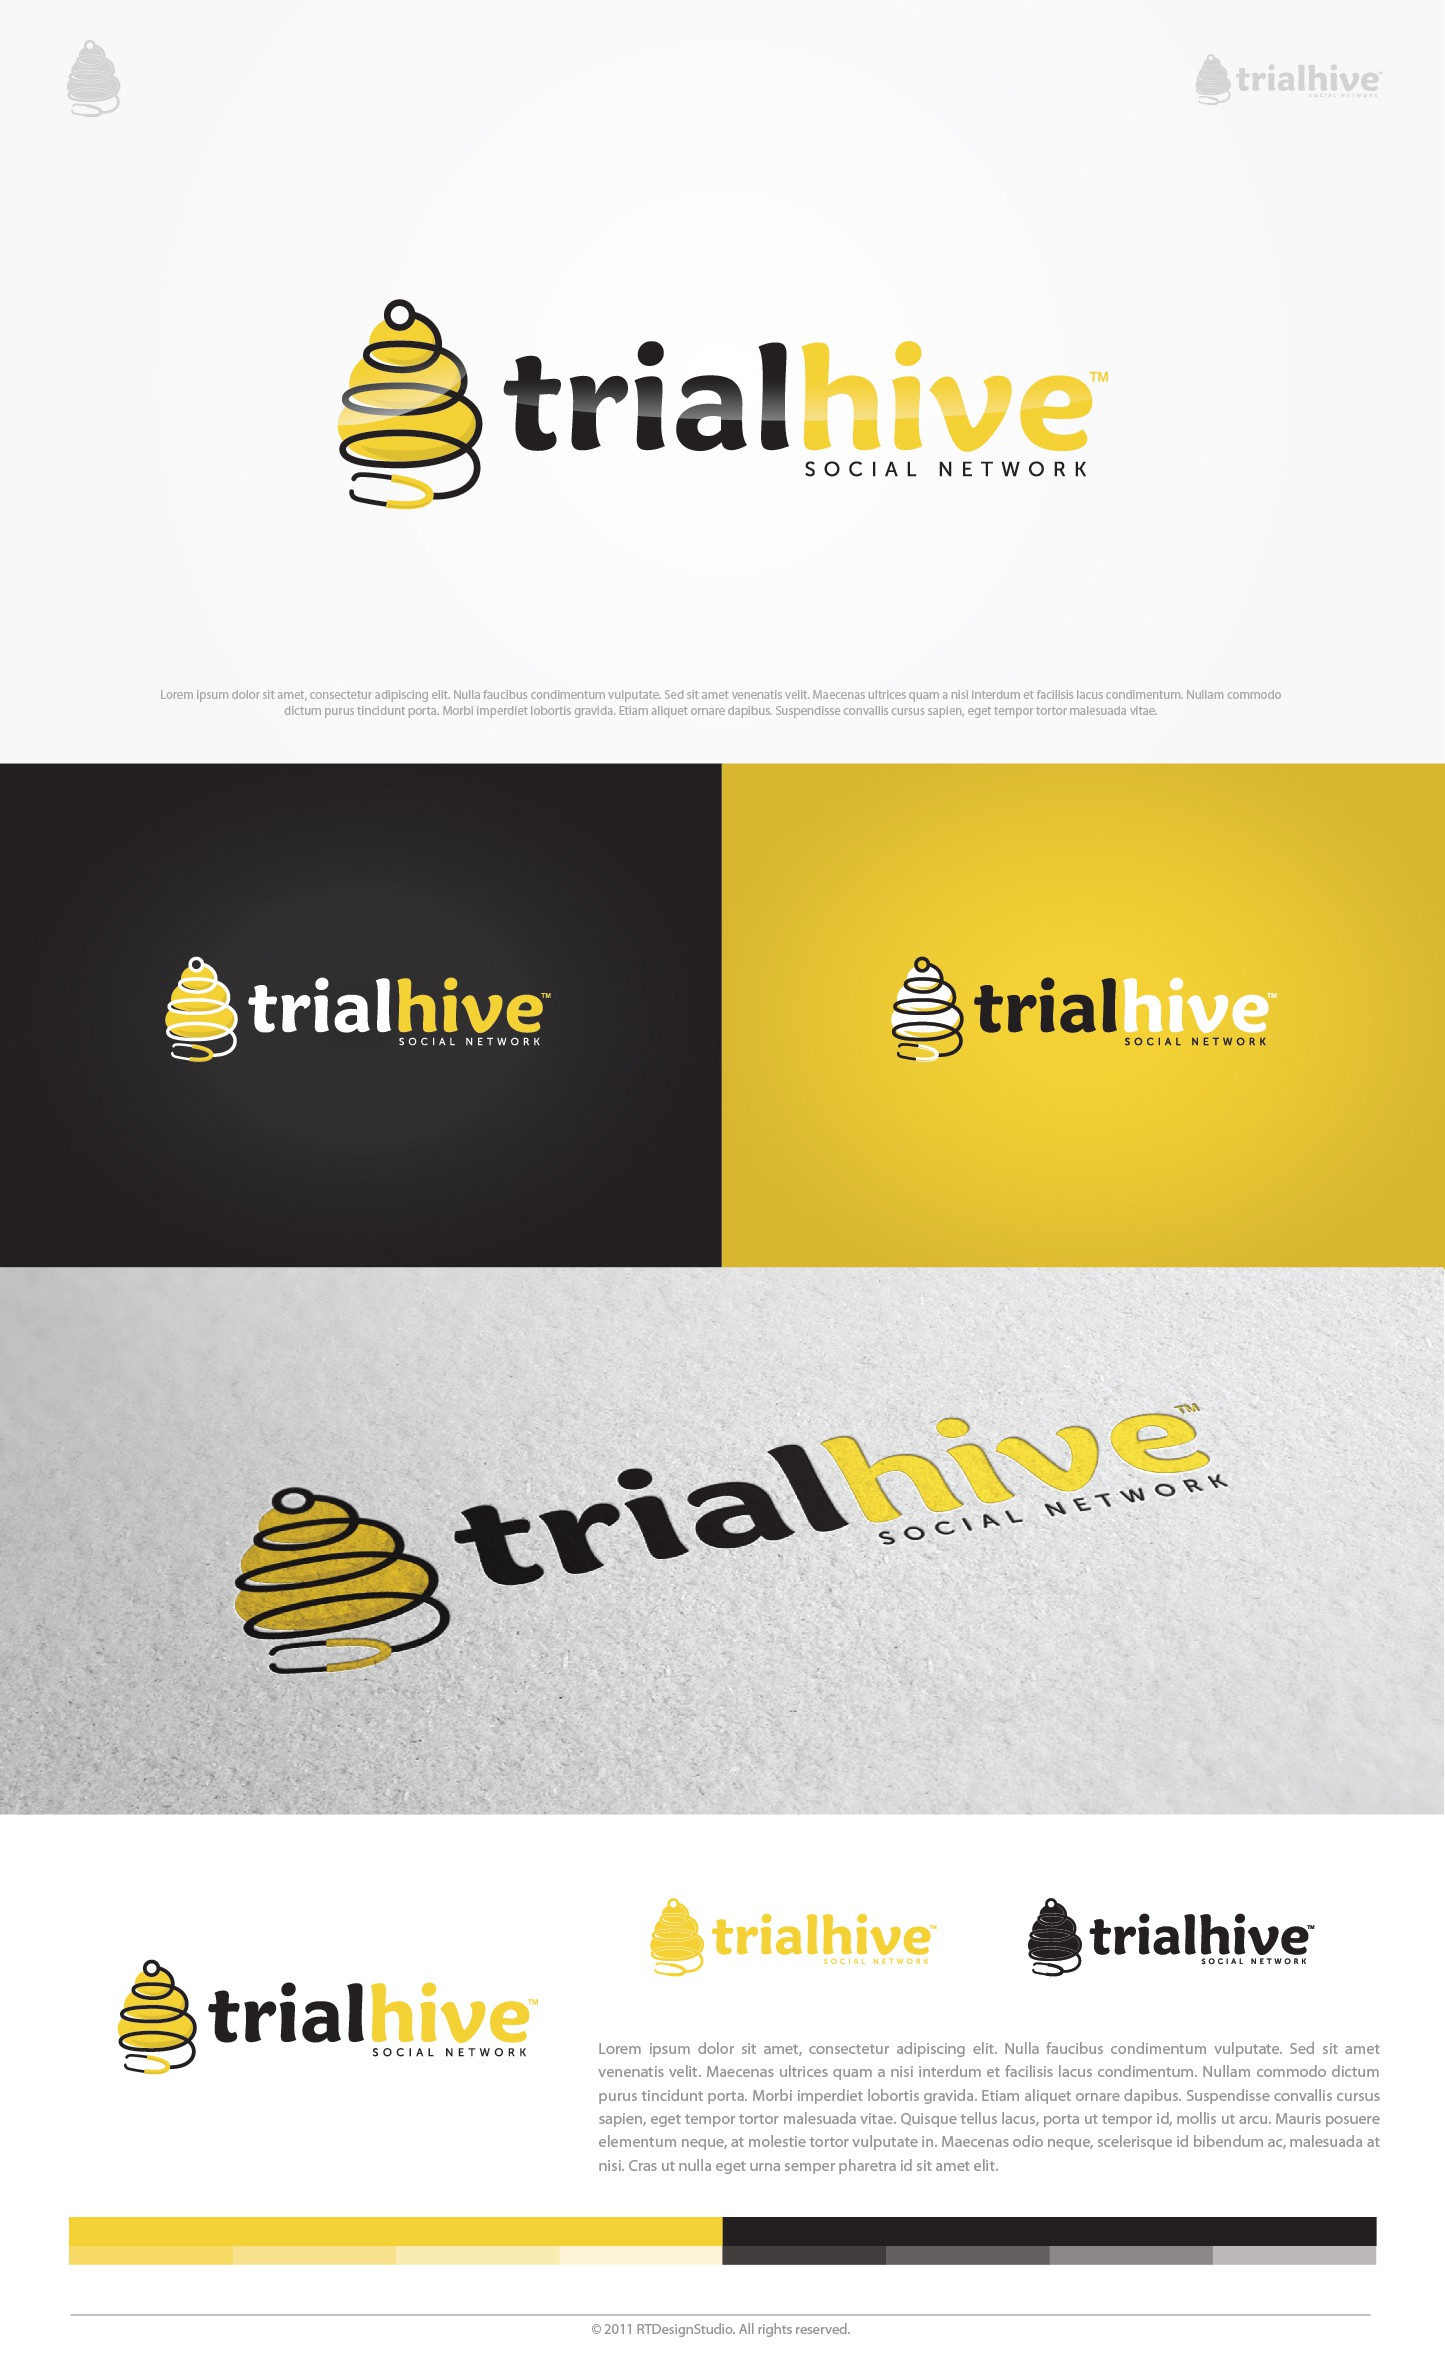 Help TrialHive with a new logo